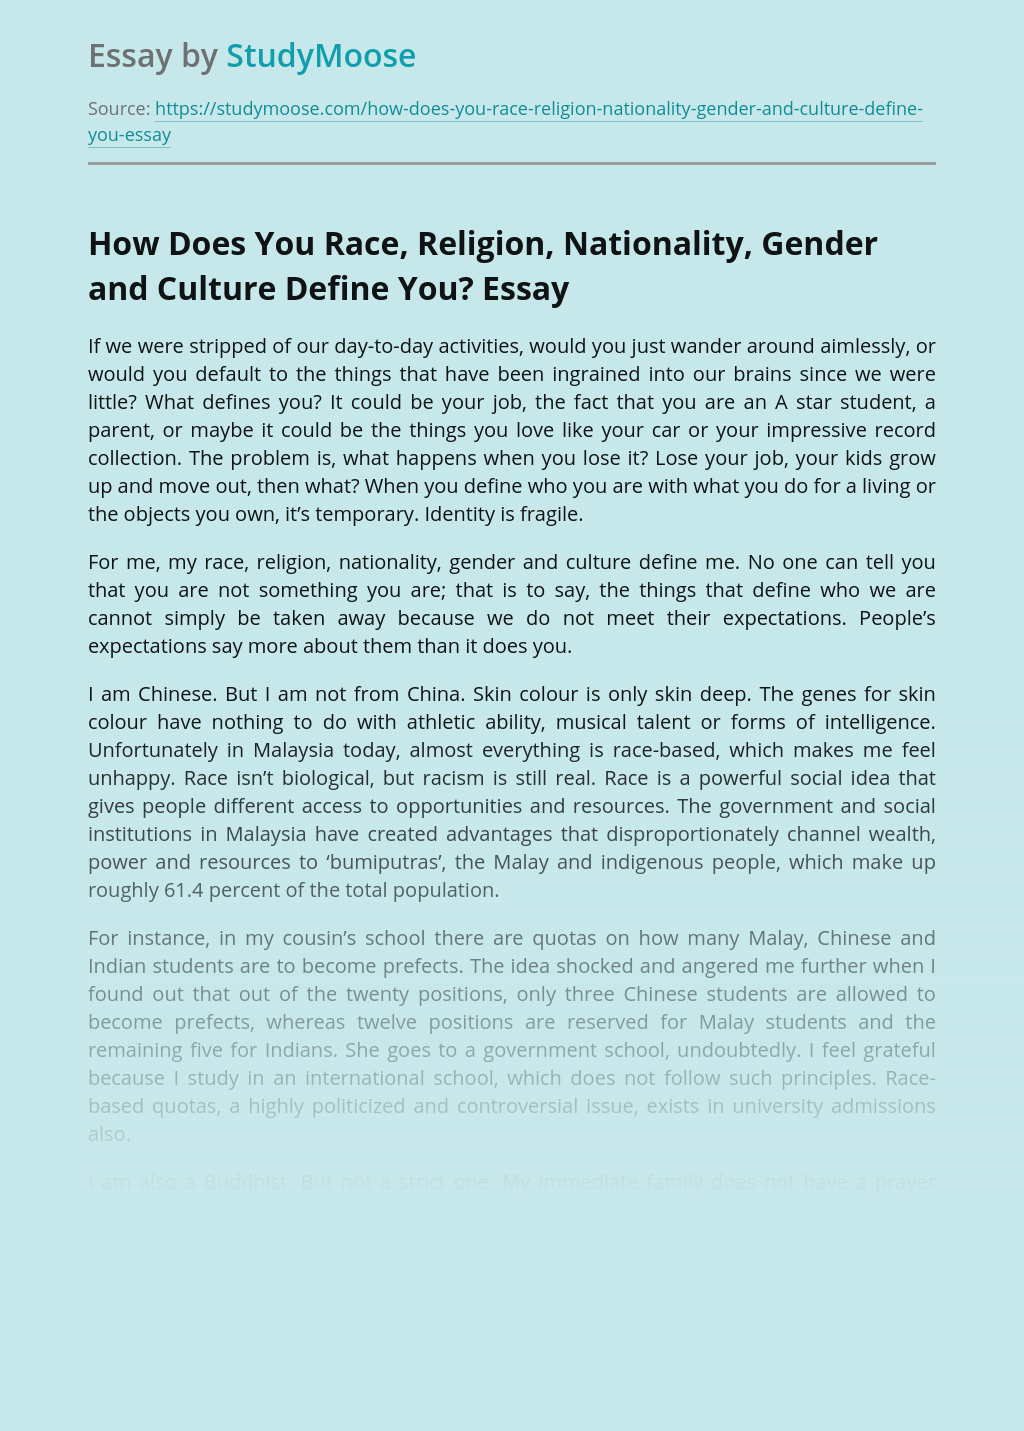 How Does You Race, Religion, Nationality, Gender and Culture Define You?